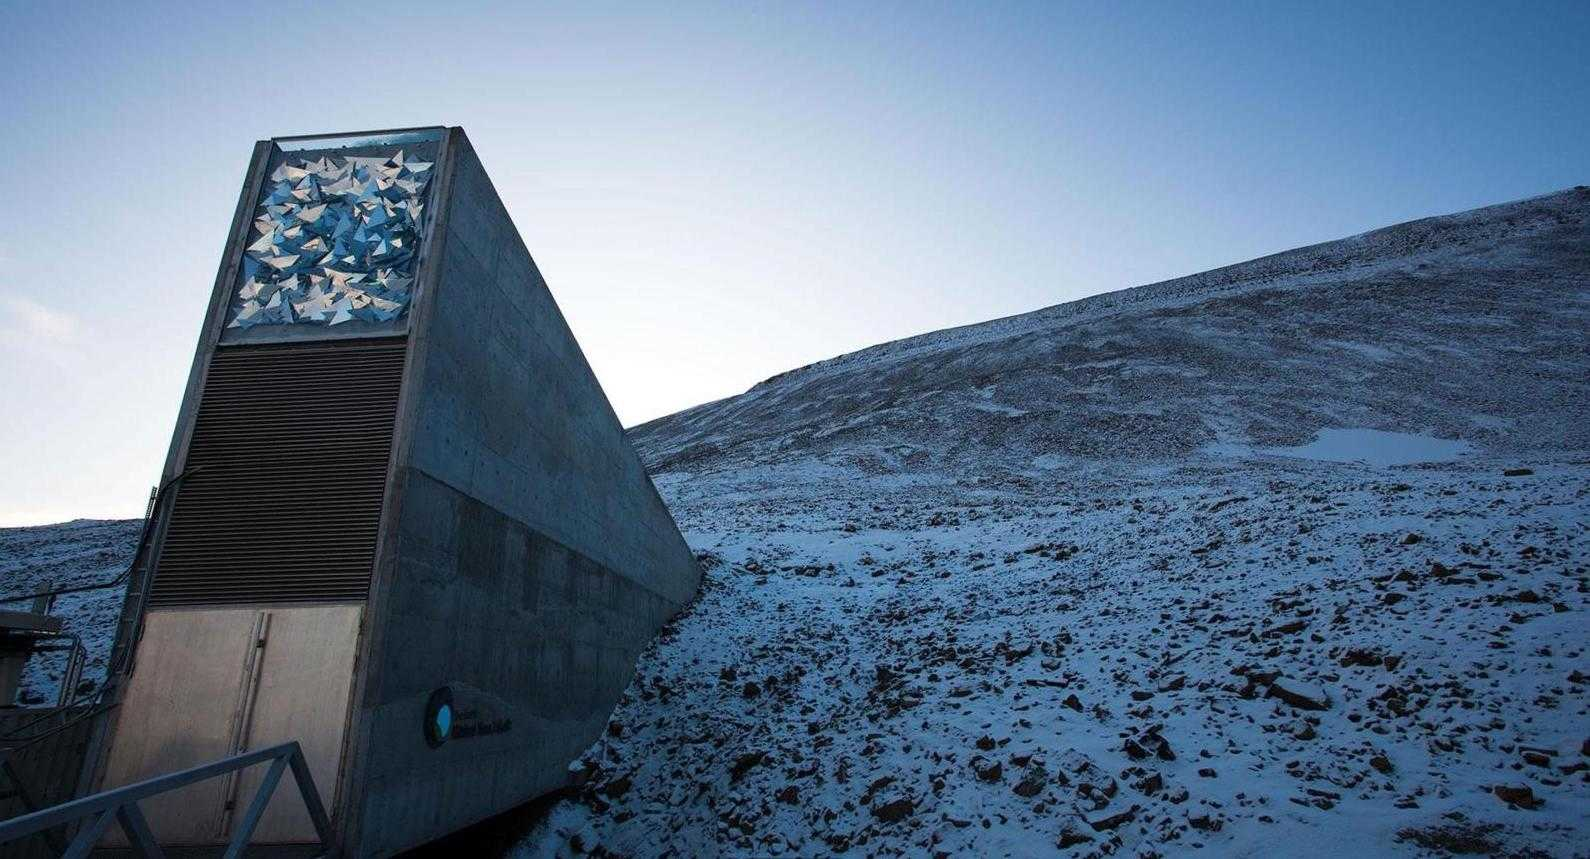 Entrance to the Global Seed Vault in Svalbard, Norway